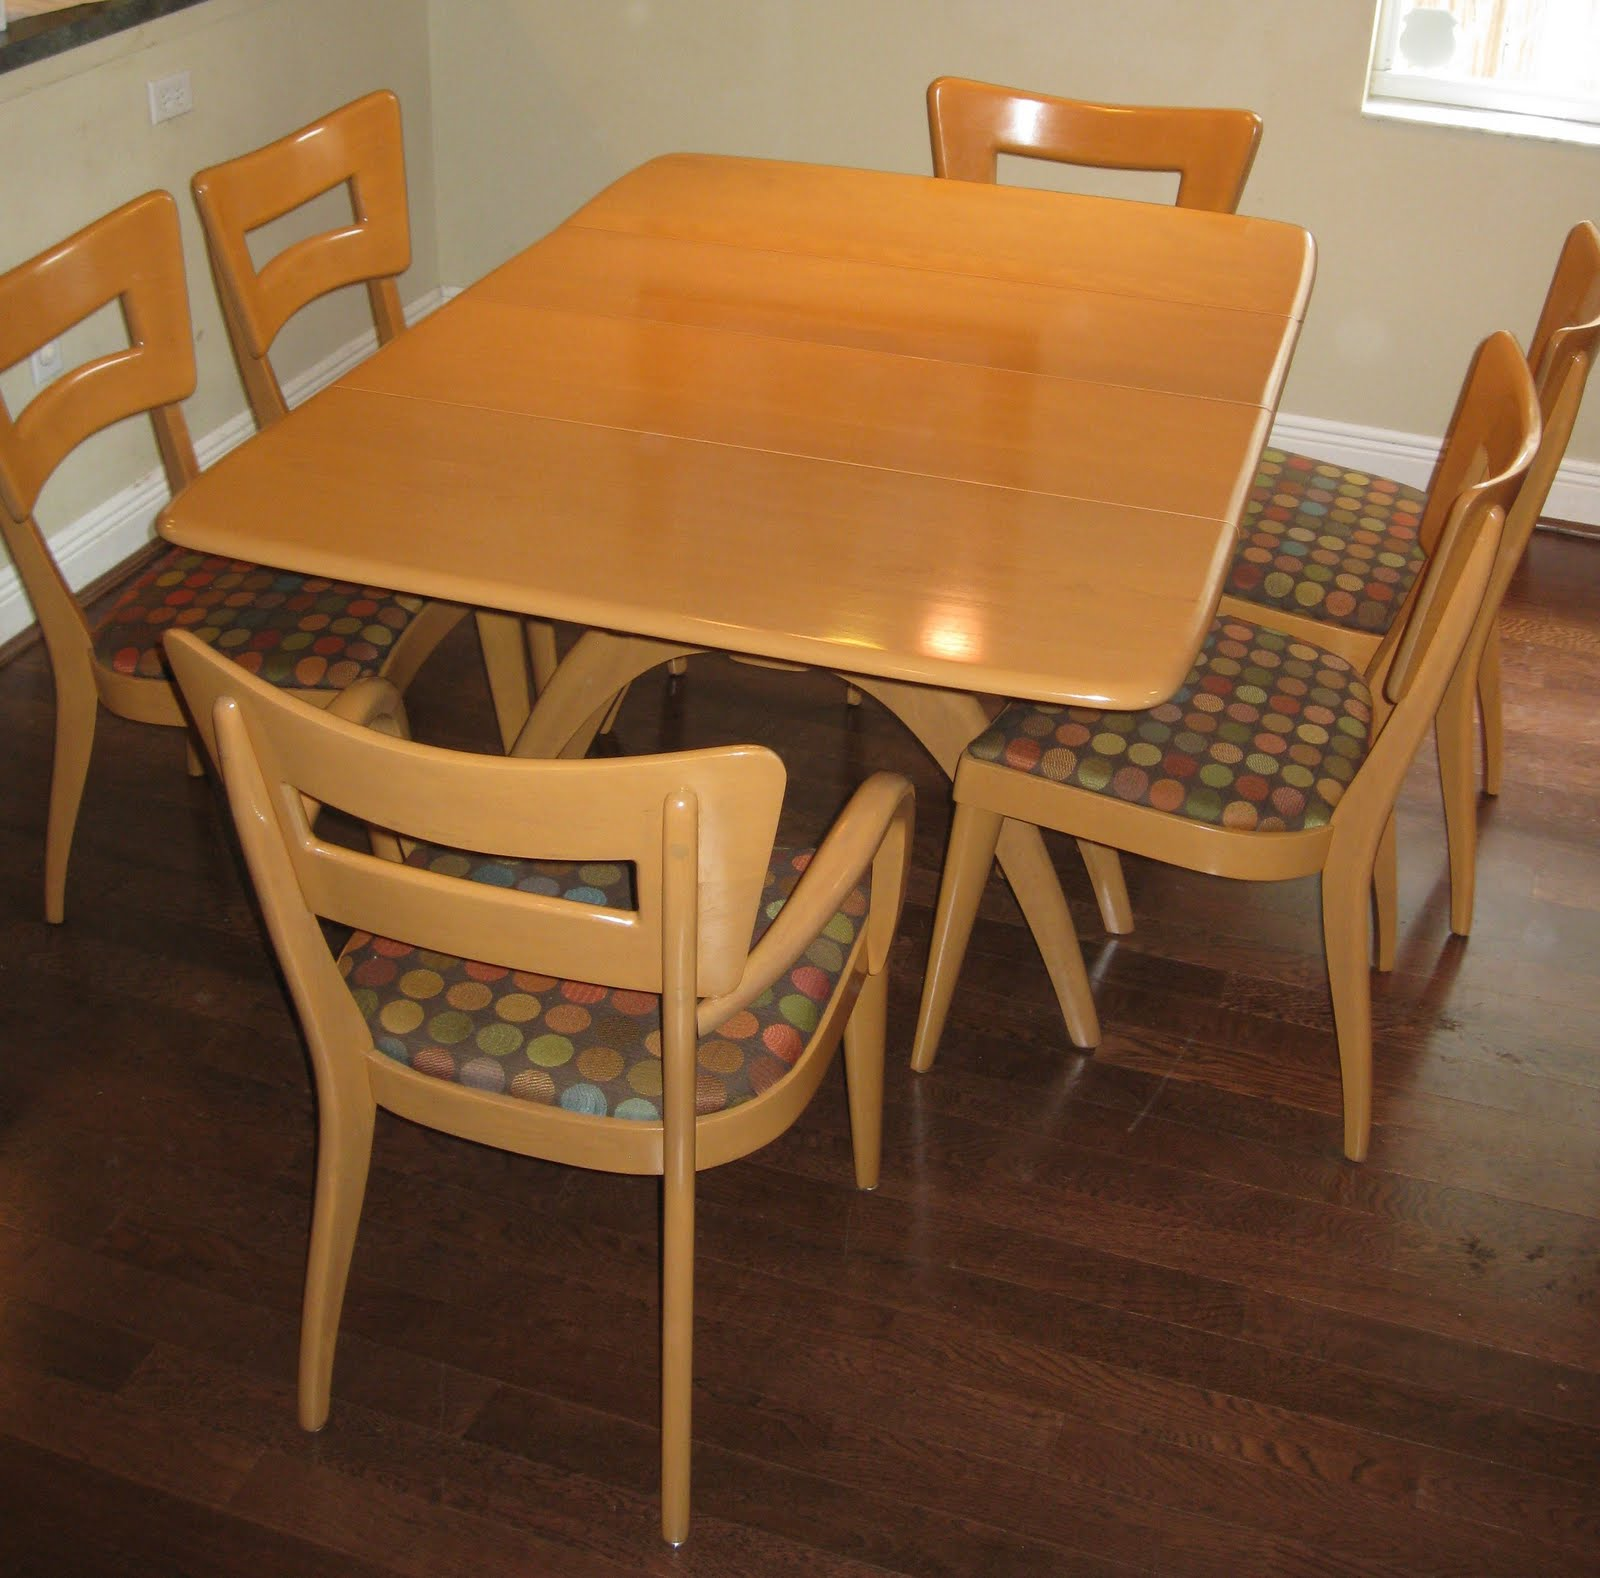 heywood wakefield dining table and chairs wedding hire sydney a modern line refinishing other